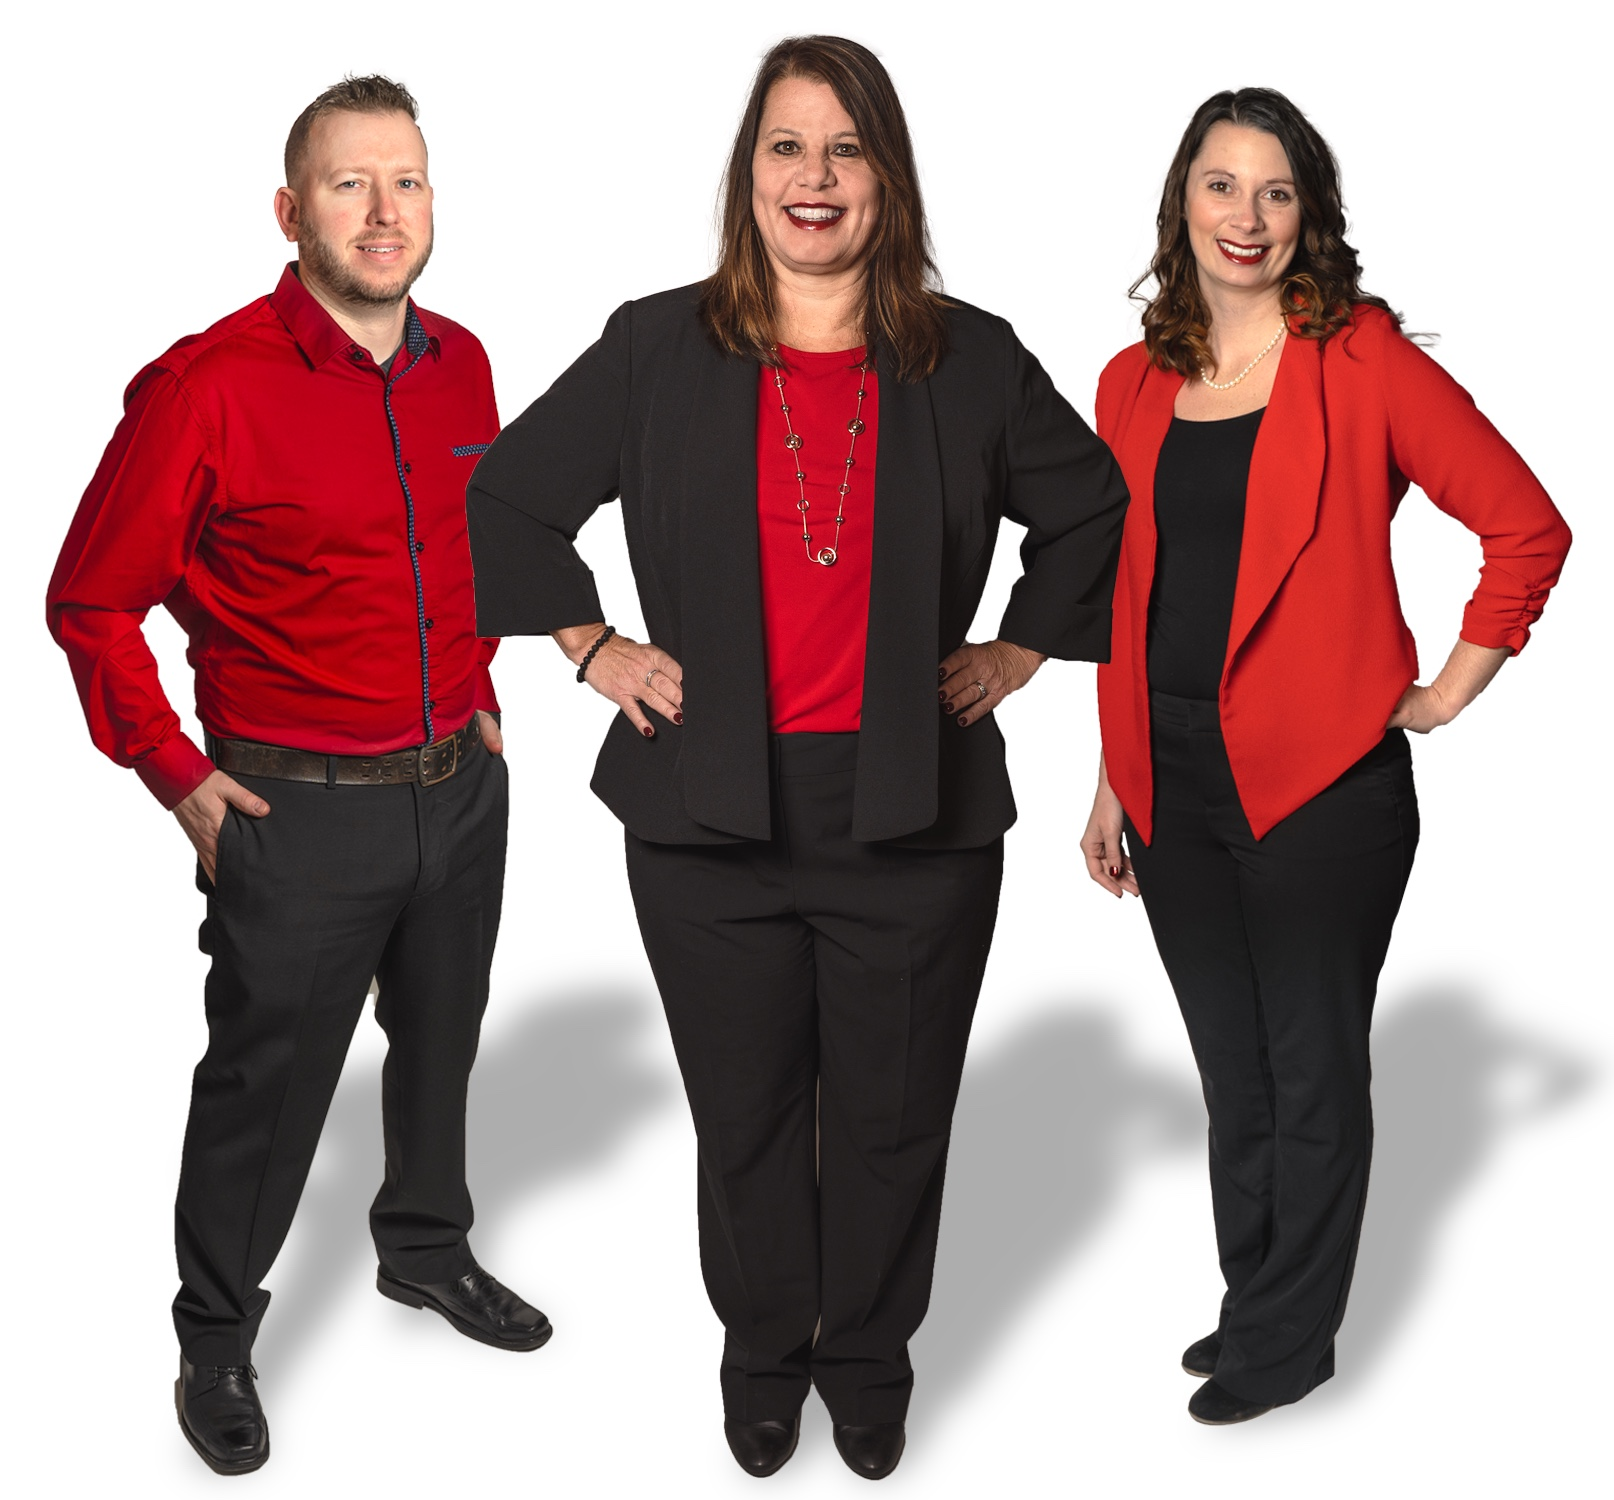 Want to Buy or Sell with the Red Door Realty Group? - HOP ON OVER TO THE RED DOOR REALTY GROUP @ PPNI'S PAGE TO LEARN MORE!